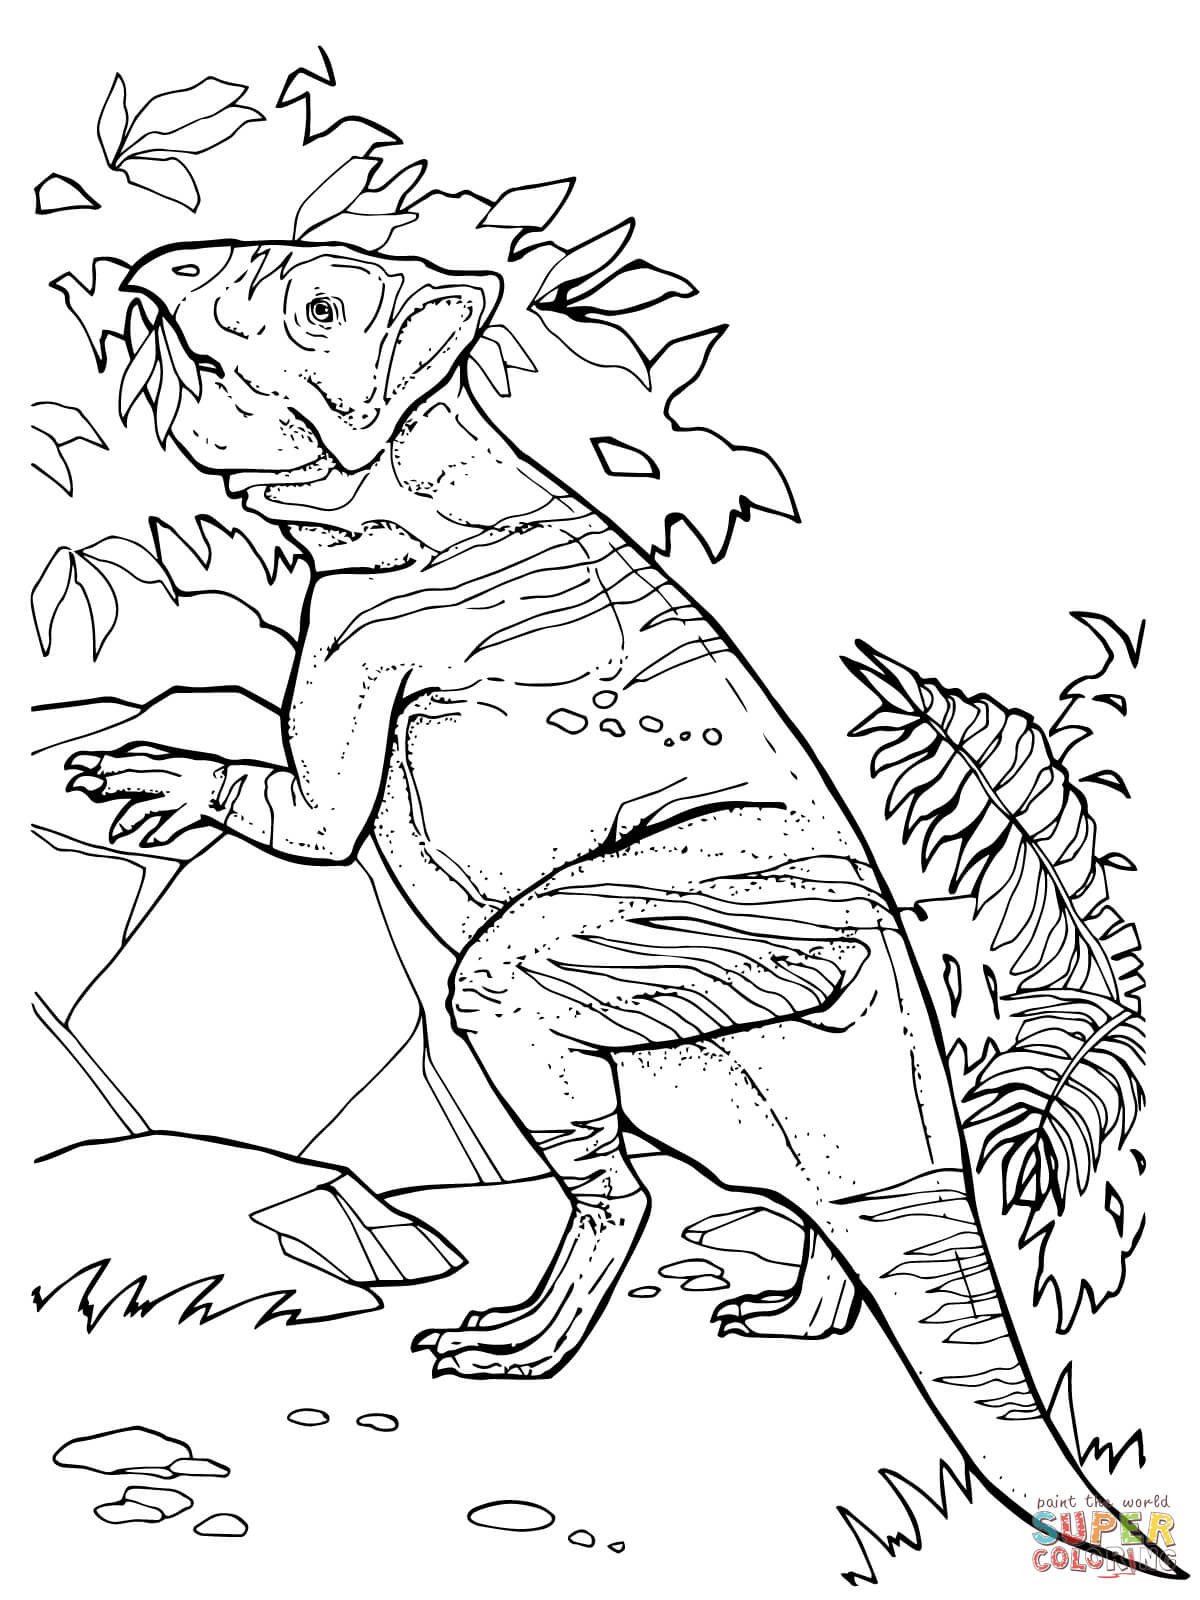 Leptoceratops Ceratopsian Dinosaurs Coloring Page